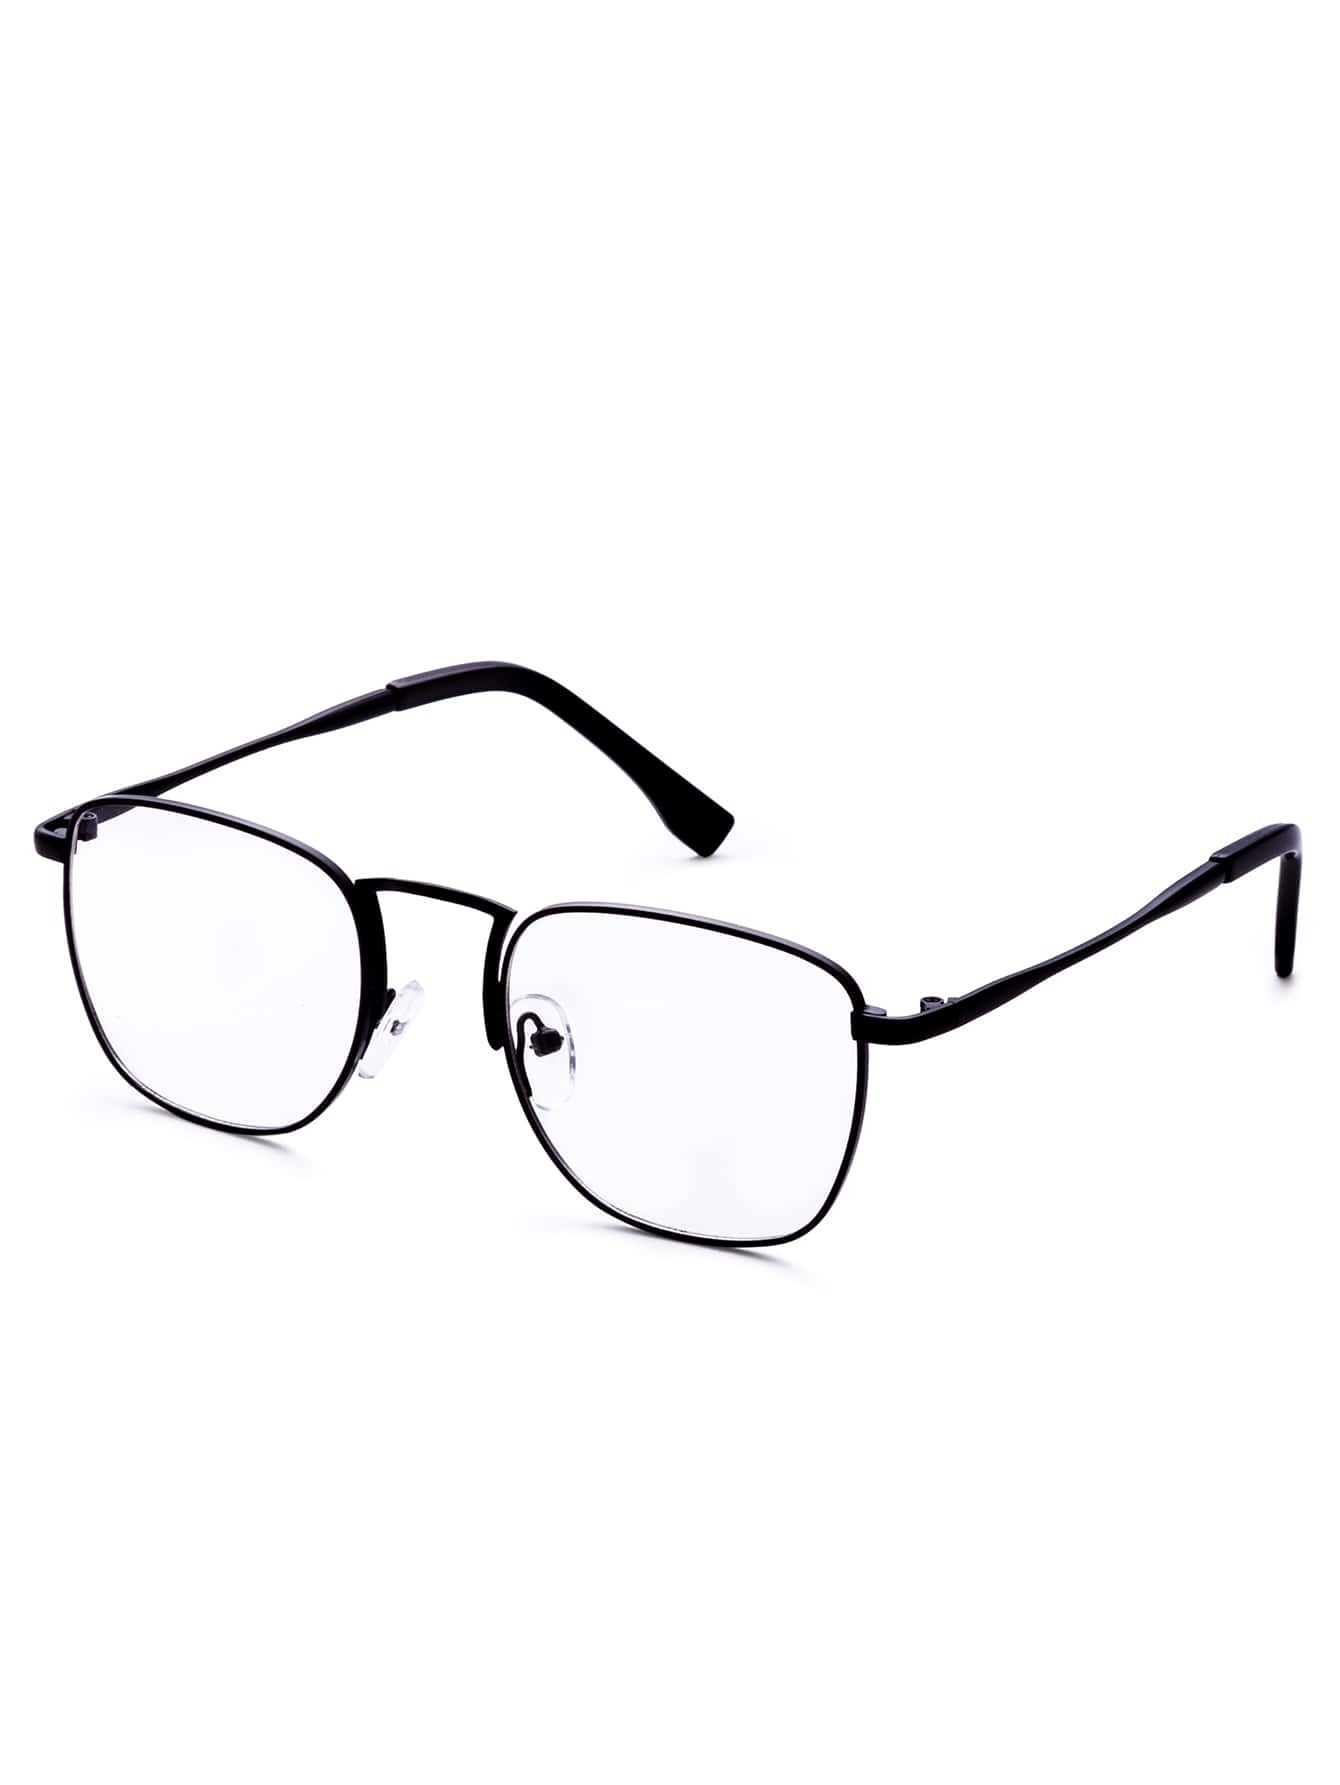 Vintage Black Frame Glasses : Black Frame Clear Lens Retro Glasses